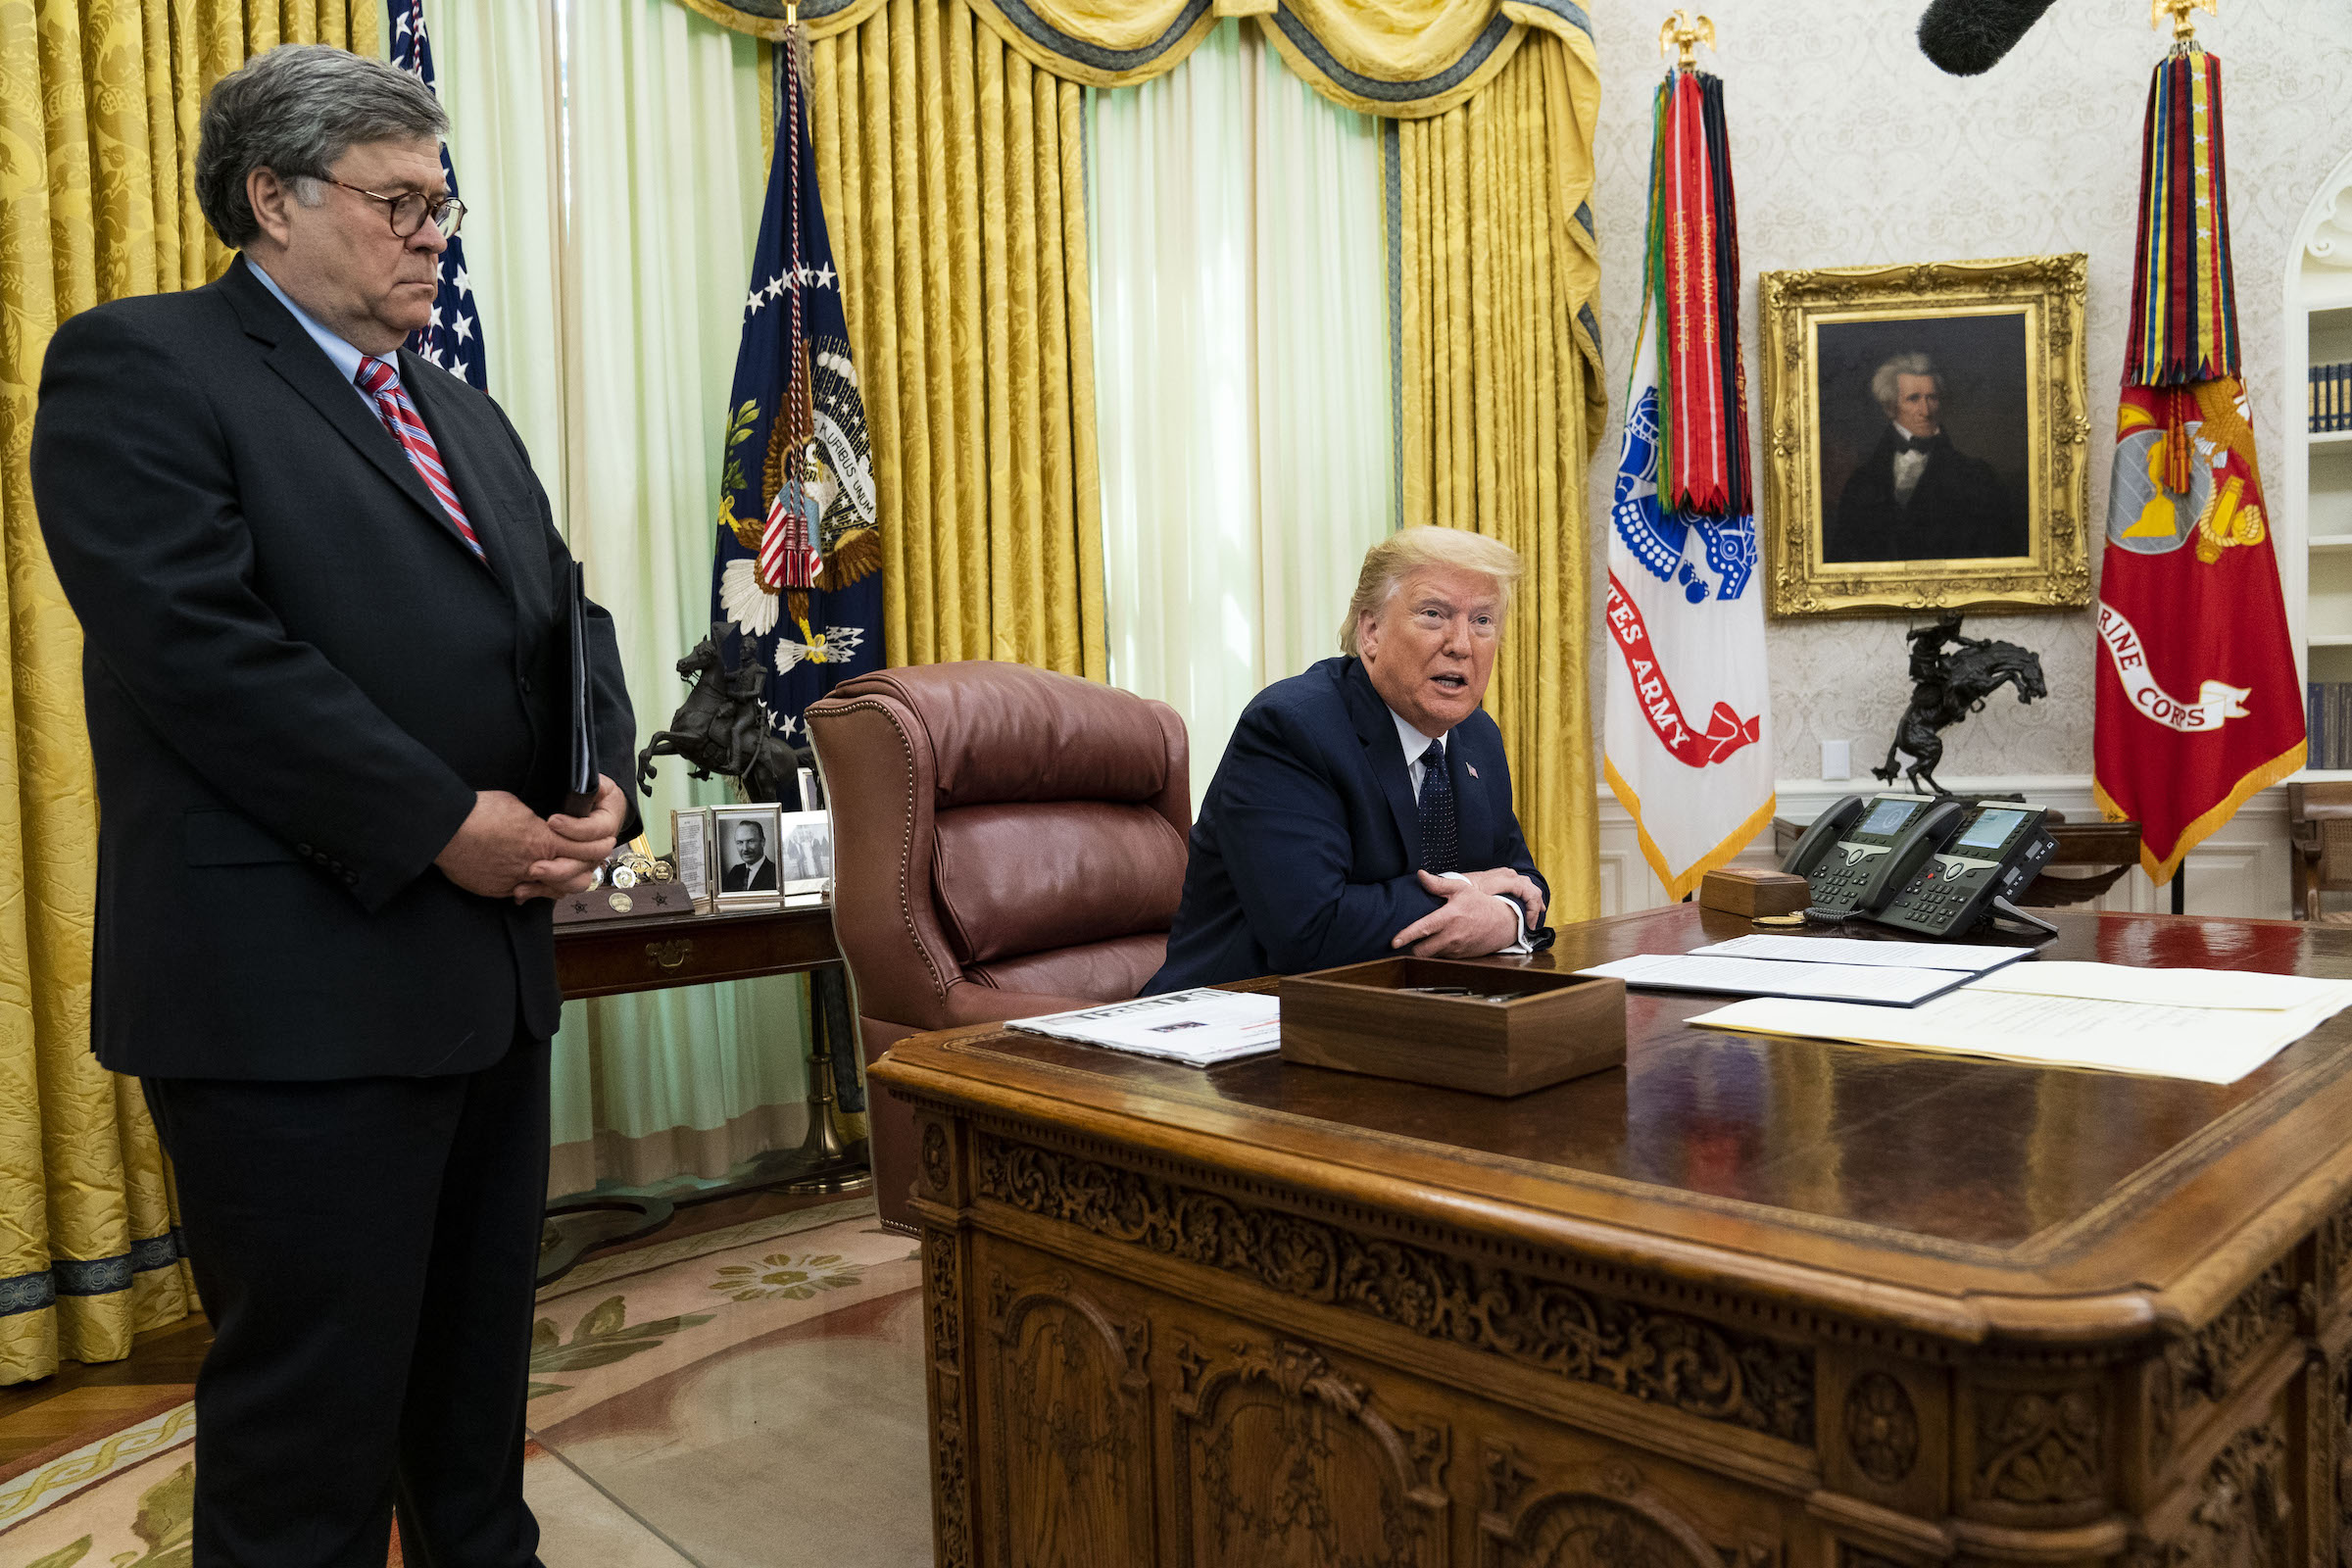 President Donald Trump, right, speaks while Attorney General William Barr stands during an executive order signing event in Washington, D.C. on May 28, 2020.